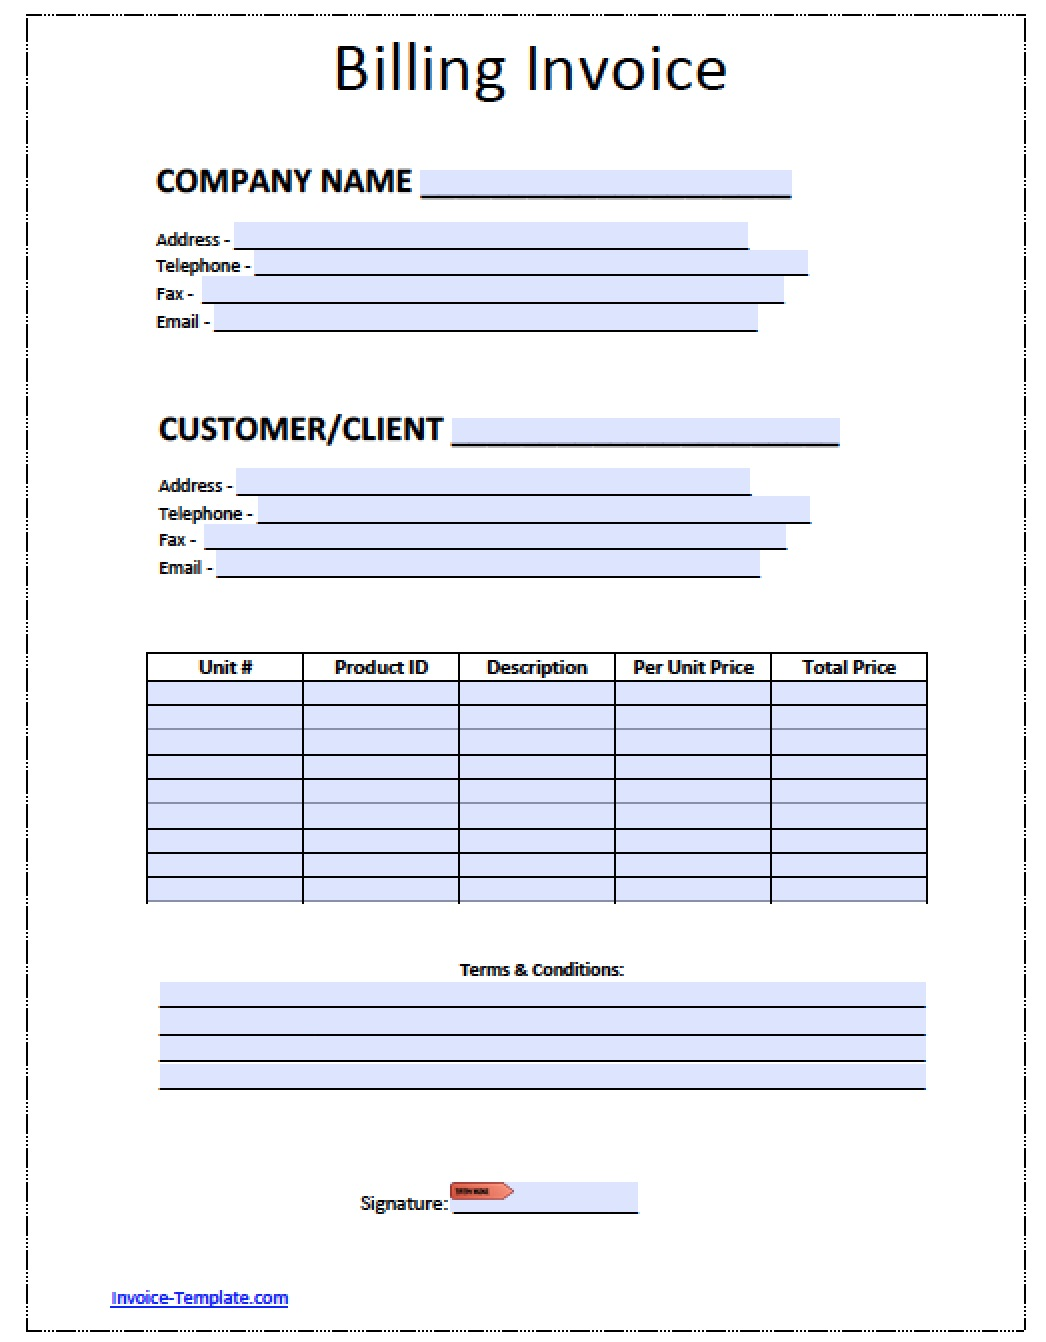 Totallocalus  Marvelous Billing Invoice Invoices Faq U Cloudflare Support Billing  With Glamorous Free Billing Invoice Template  Excel  Pdf  Word Doc  Billing With Nice Tax Invoice Templates Also Invoice Sample In Word In Addition Sample Tax Invoice Template And Model Of Invoice As Well As Bill Invoice Format In Word Additionally Invoice Format In Word Free Download From Happytomco With Totallocalus  Glamorous Billing Invoice Invoices Faq U Cloudflare Support Billing  With Nice Free Billing Invoice Template  Excel  Pdf  Word Doc  Billing And Marvelous Tax Invoice Templates Also Invoice Sample In Word In Addition Sample Tax Invoice Template From Happytomco